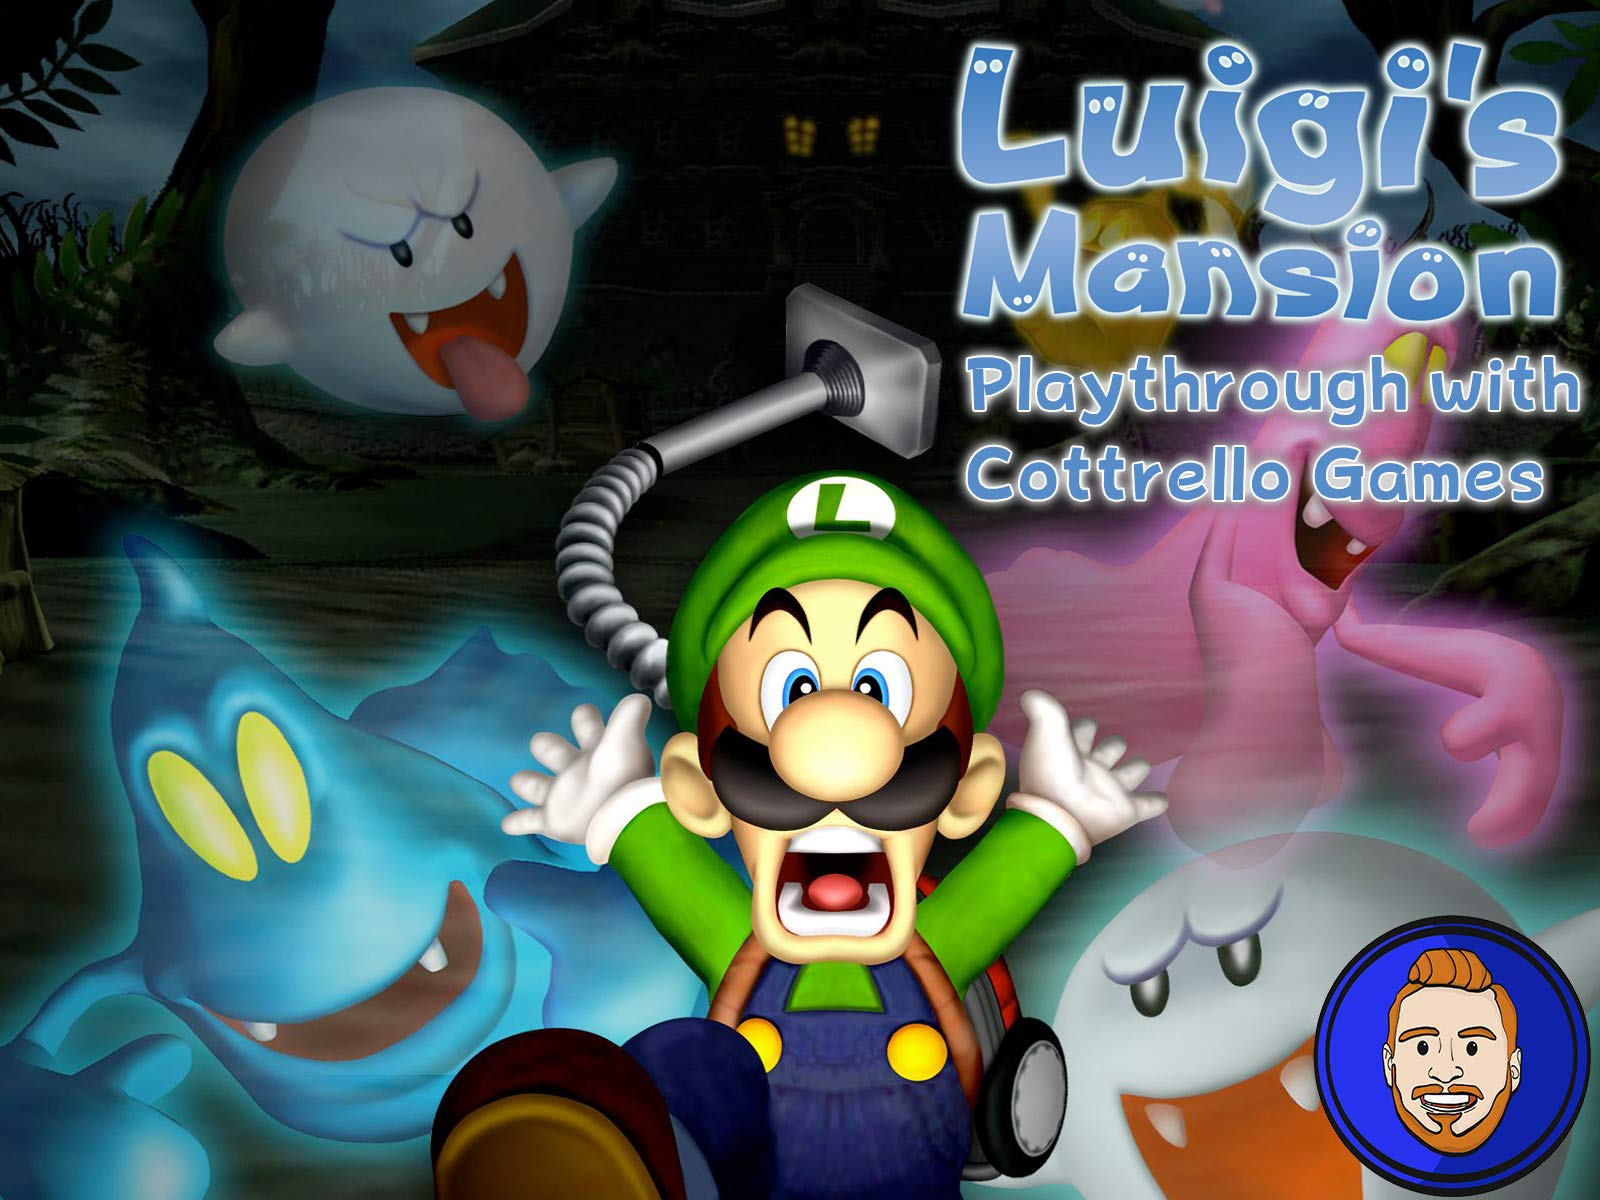 Luigi's Mansion Playthrough with Cottrello Games